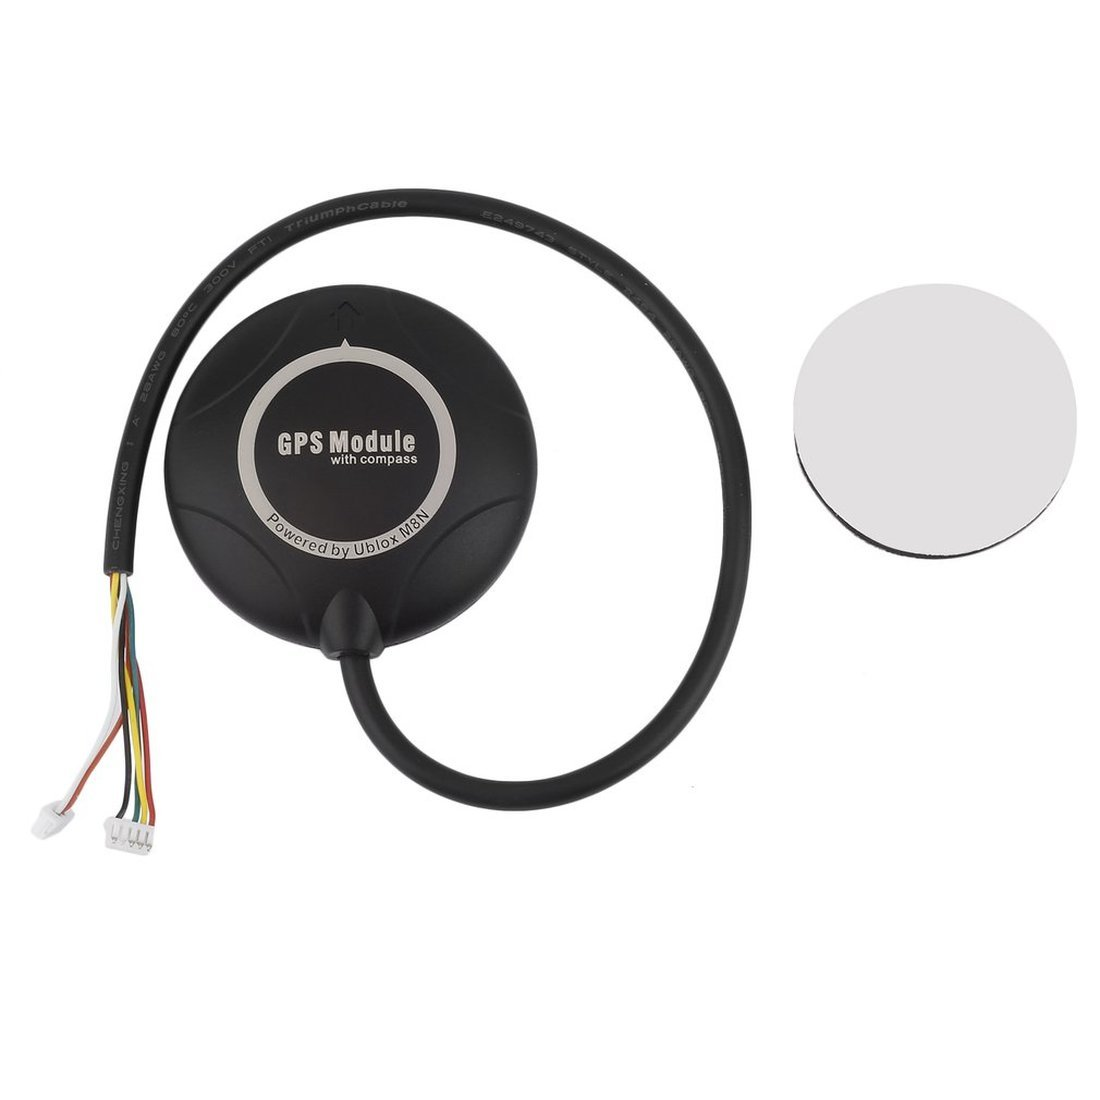 1pcs OCDAY NEO-M8N Flight Controller GPS Module with On-board Compass M8 Engine PX4 Pixhawk TR For OCDAY Drone GPS Formulaone